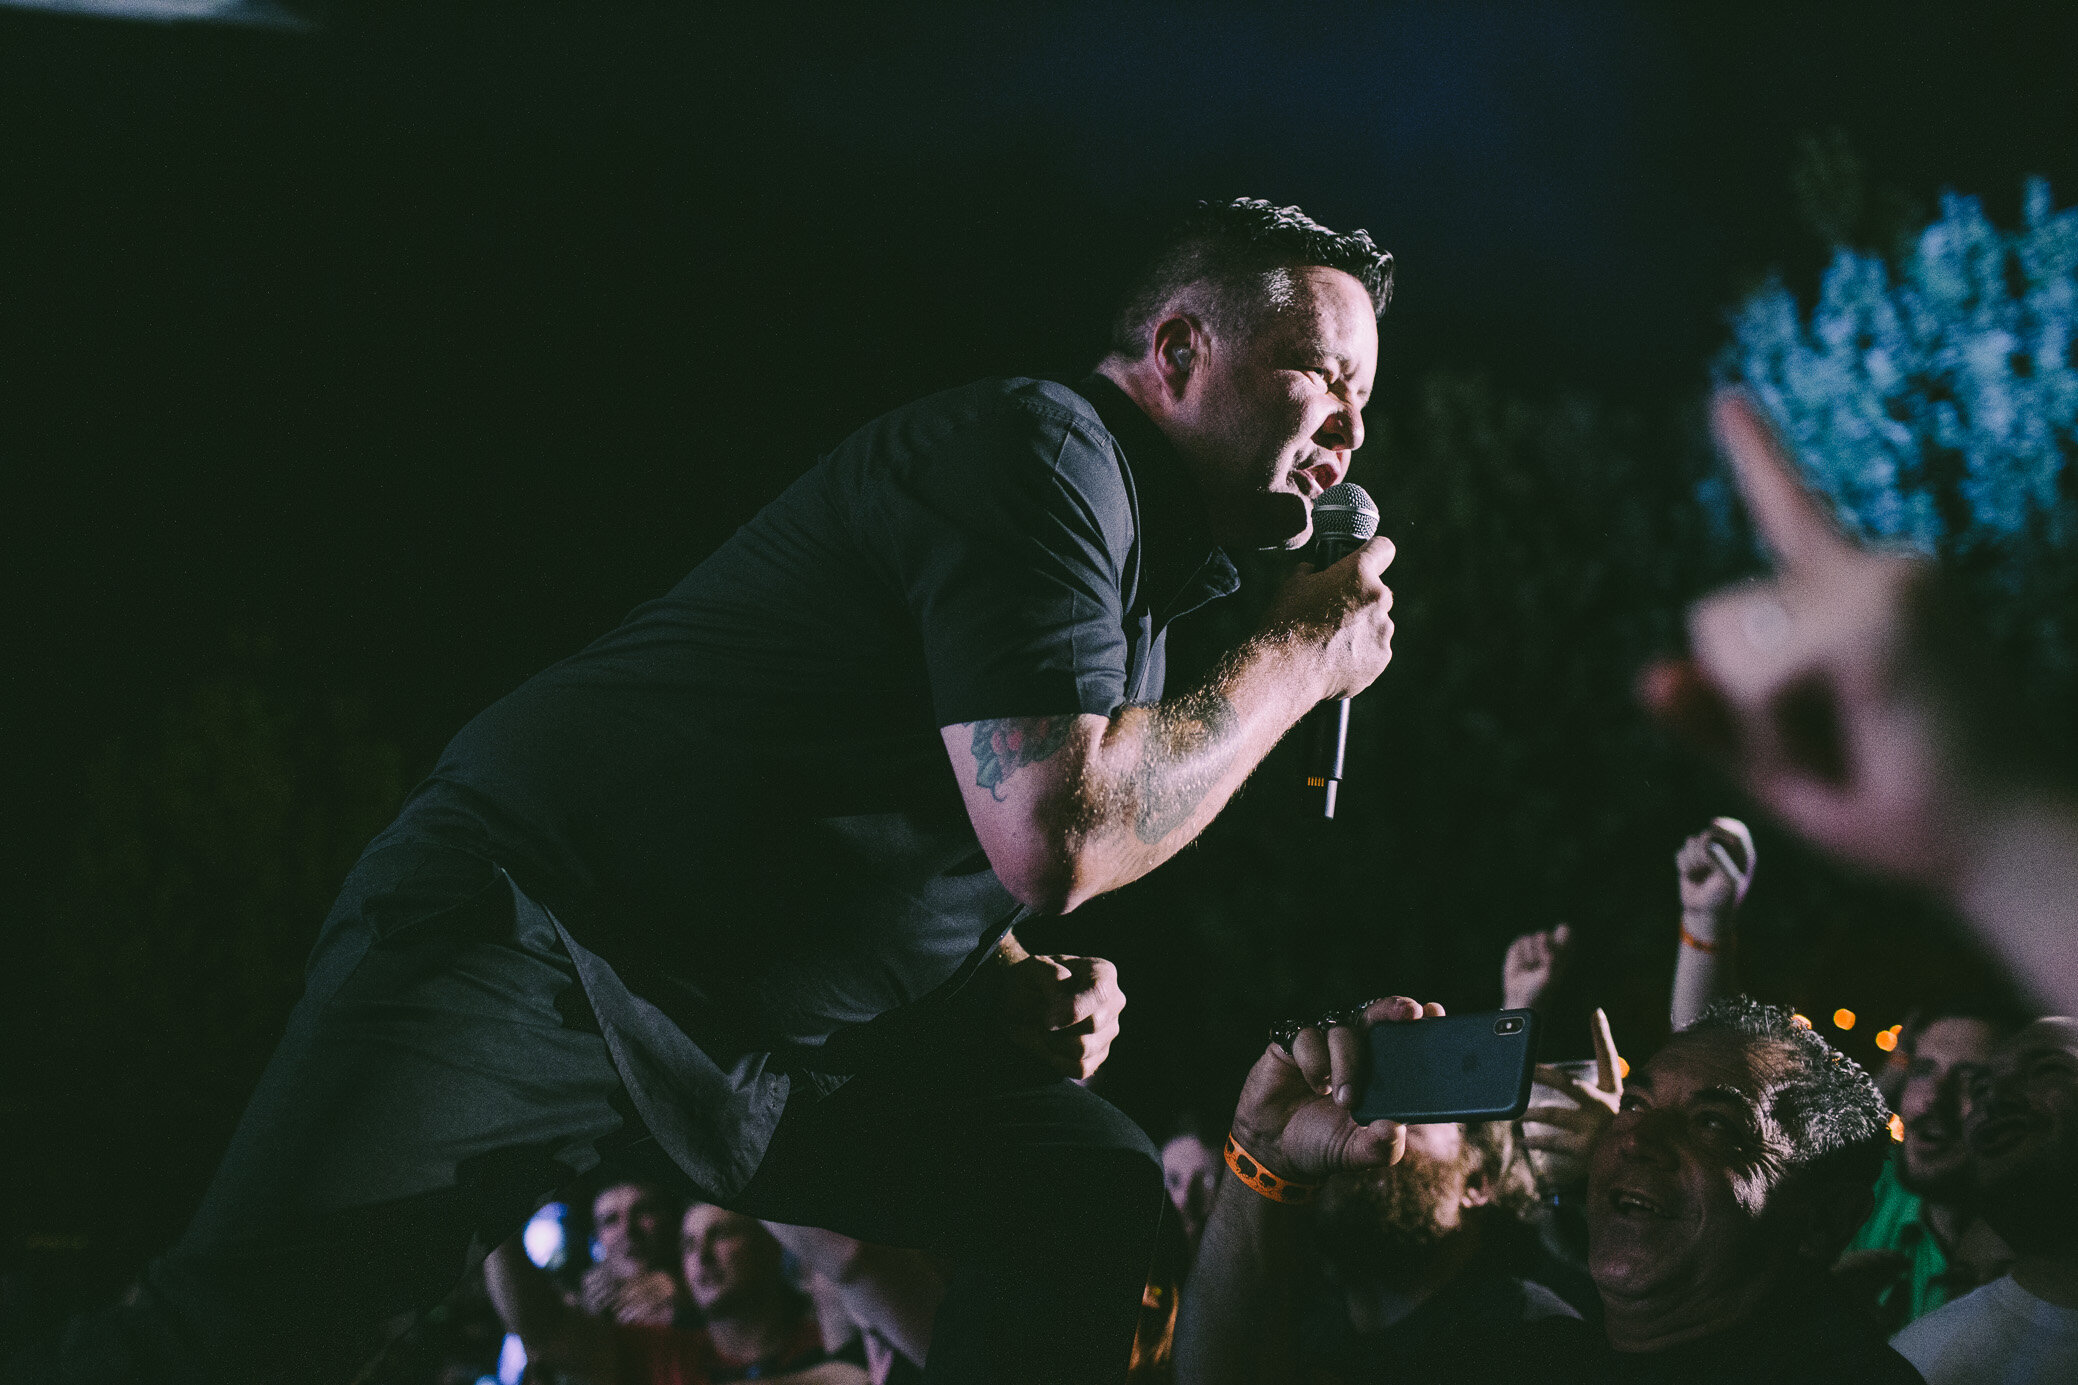 Dropkick Murphys perform in concert at Avondale Brewing in Birmingham, Alabama on September 26th, 2019 (Photo by David A. Smith/DSmithScenes)